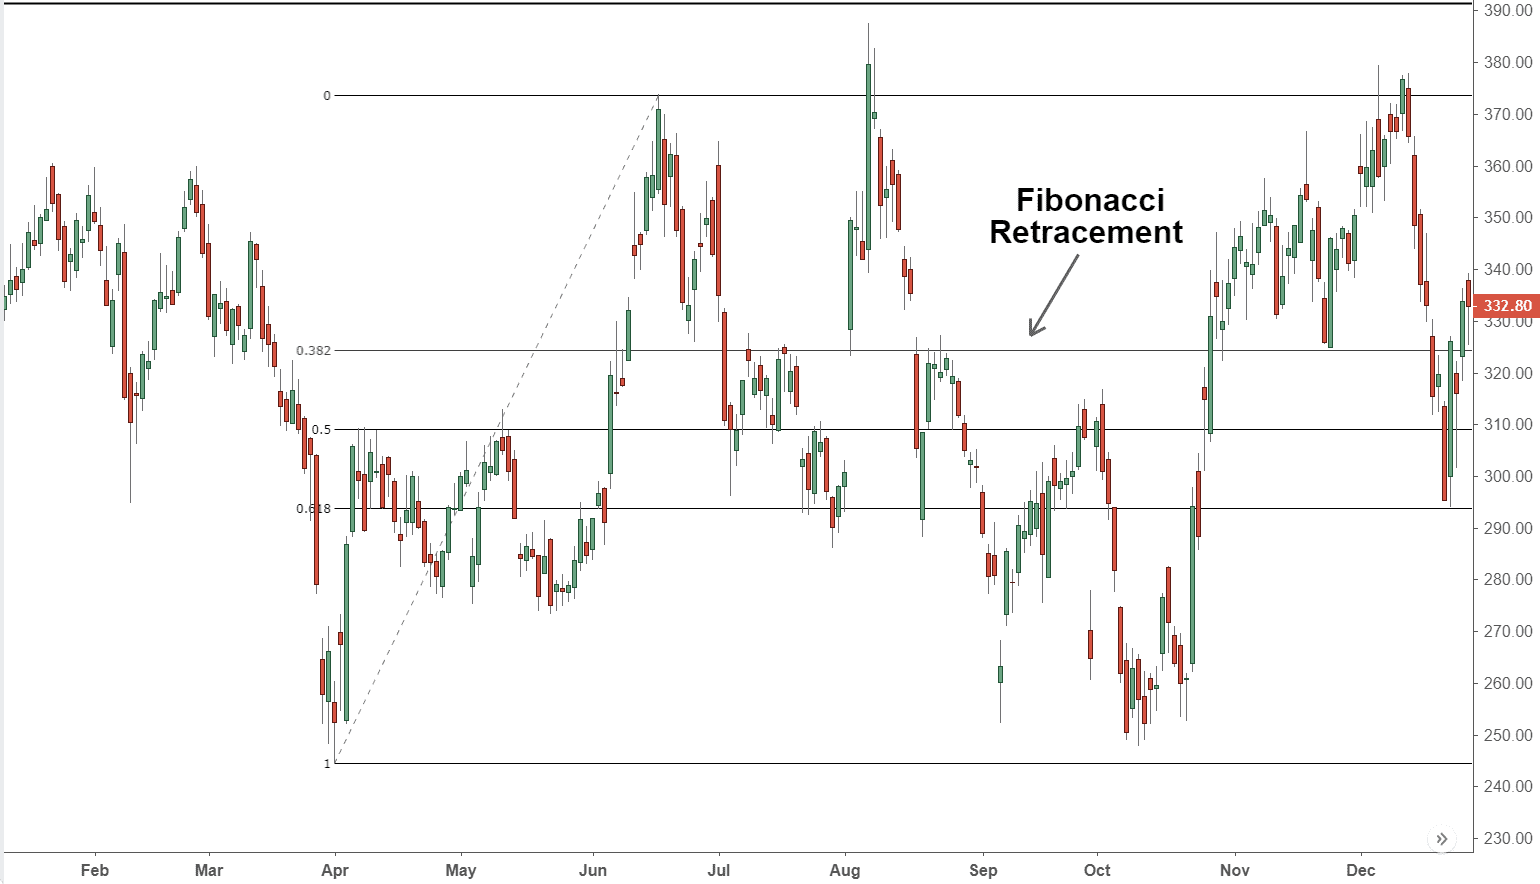 FibonacciRetracement